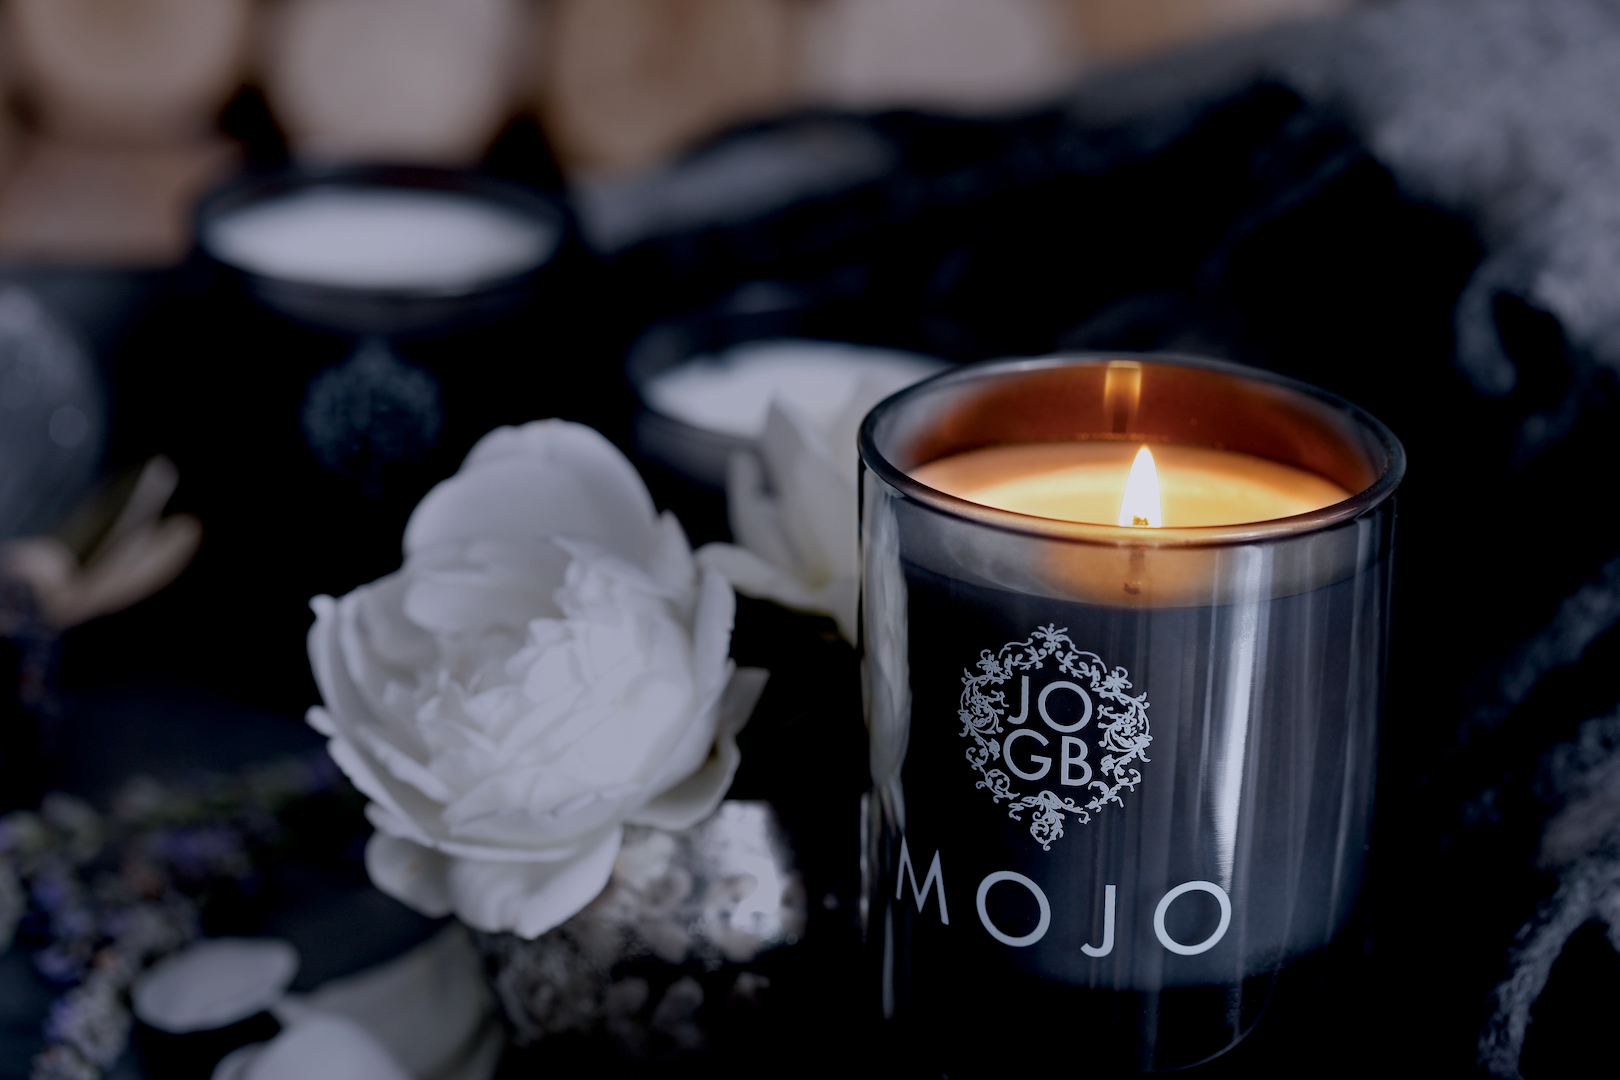 Candles - Our luxurious British artisan aromas are totally exclusive to JOGBLiving: consciously created using 100% plant essential oil fragrances in handmade botanical waxes designed to add harmony to your mood & your home.